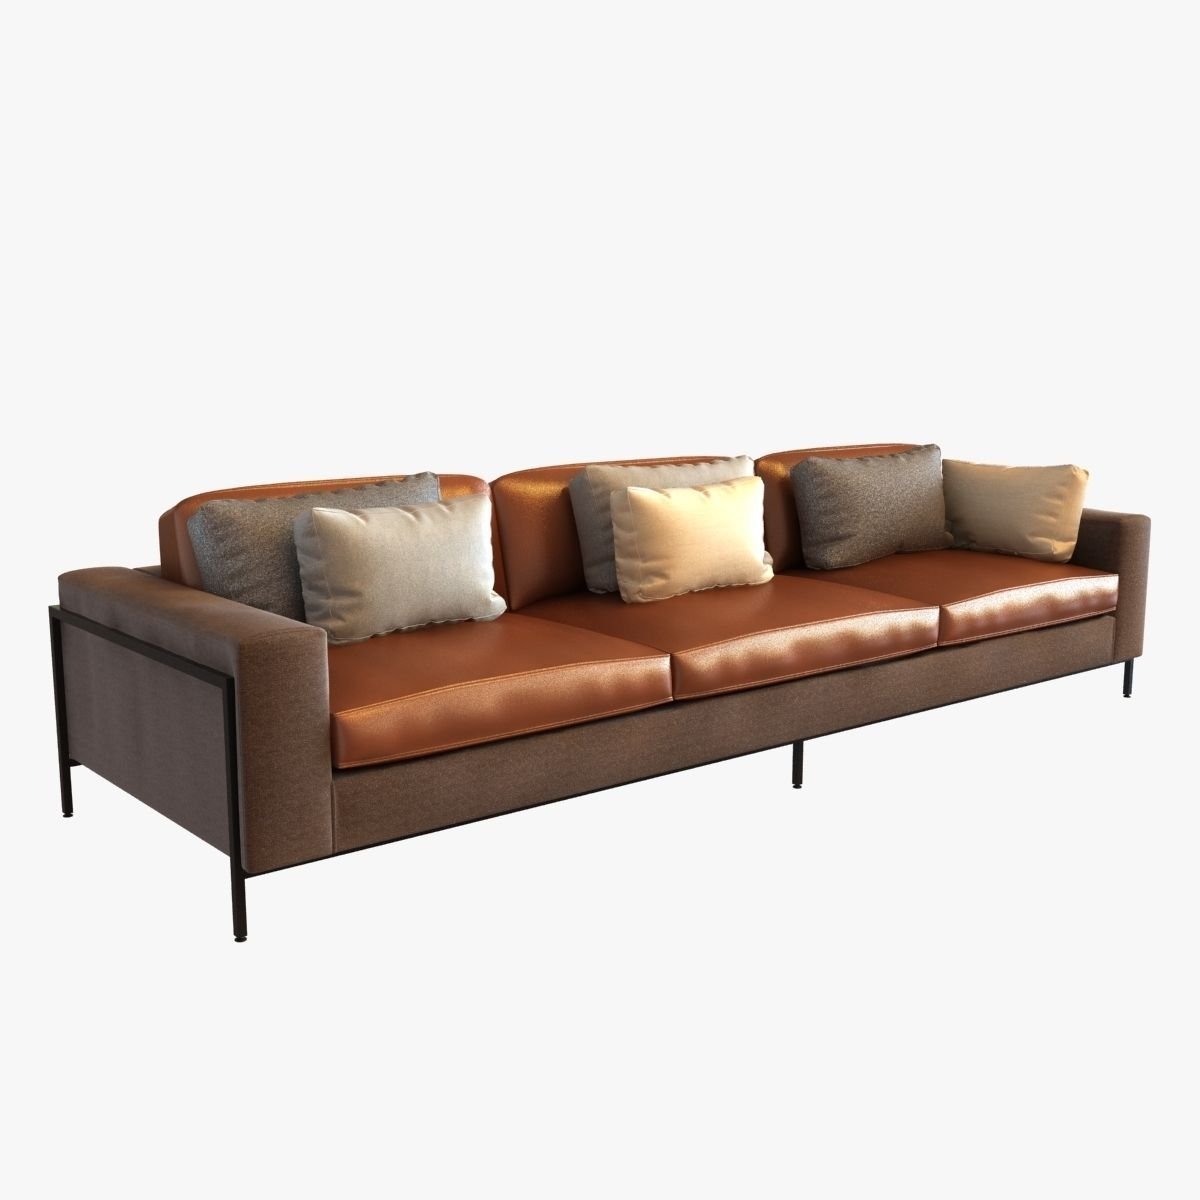 ralph pucci upholstery 3 seat sofa | 3D model